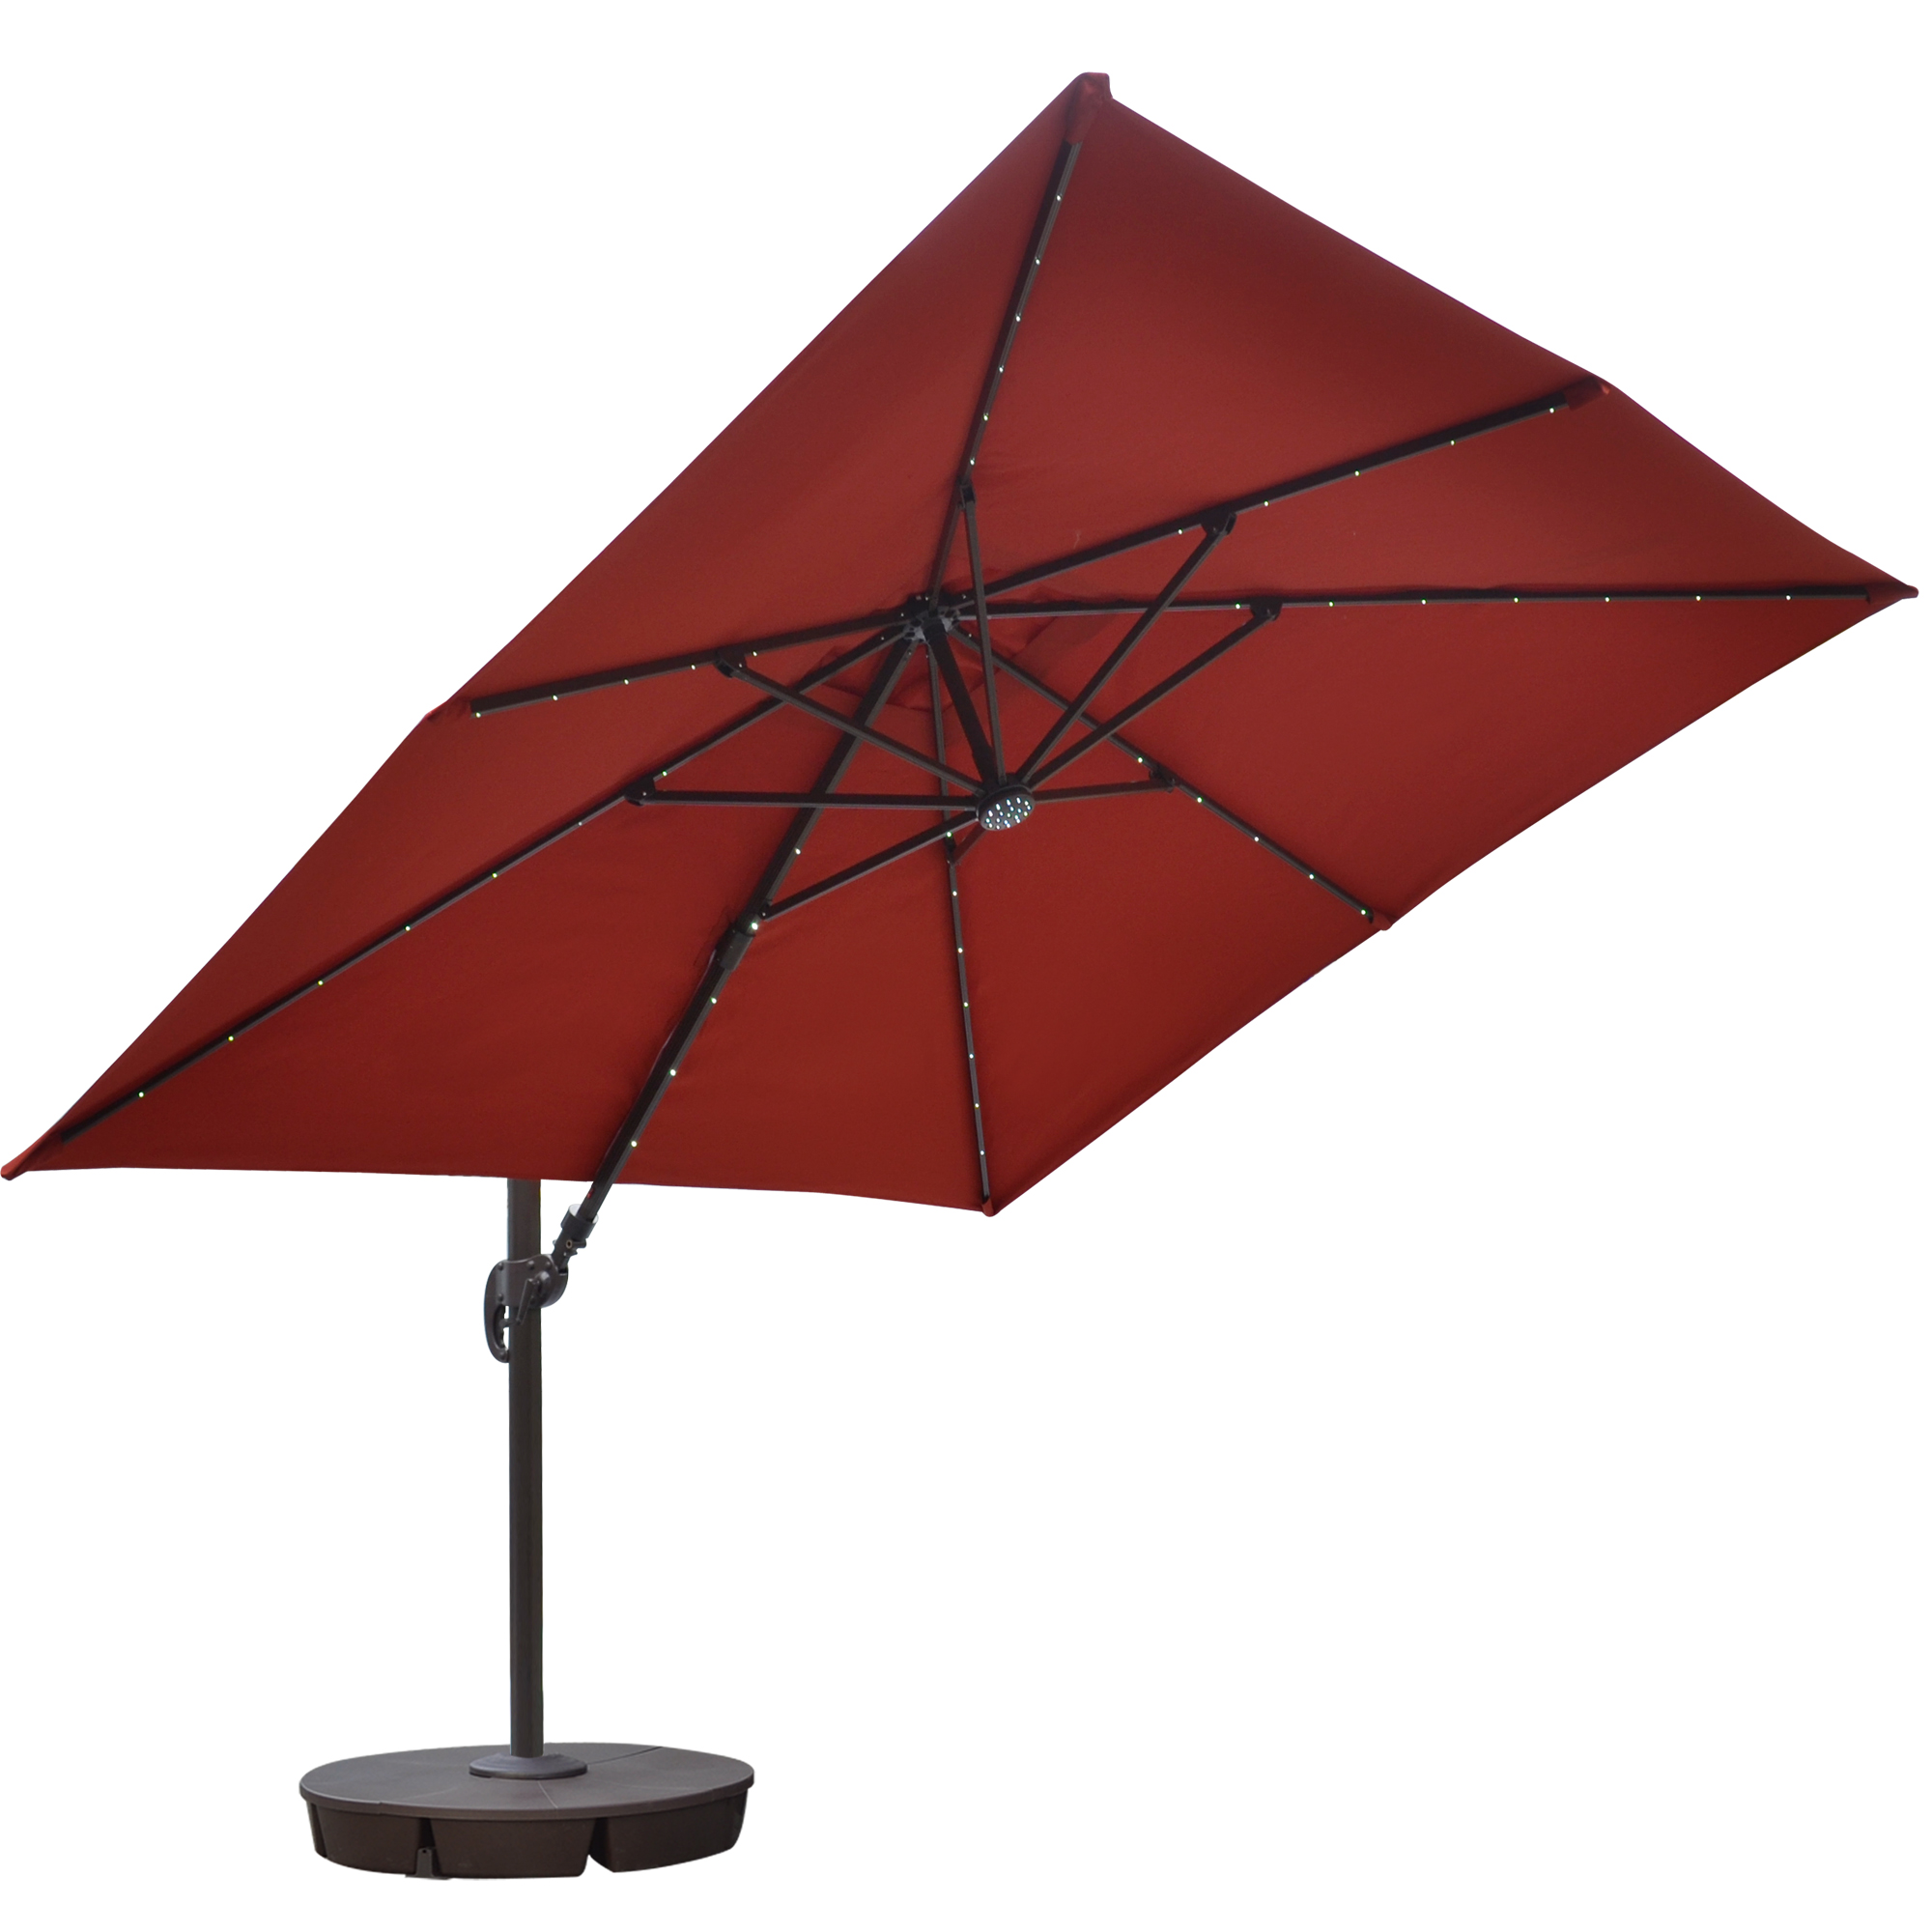 Island Umbrella Santorini II Fiesta 10 Ft Square Cantilever Solar Patio  Umbrella In Terra Cotta Sunbrella Acrylic